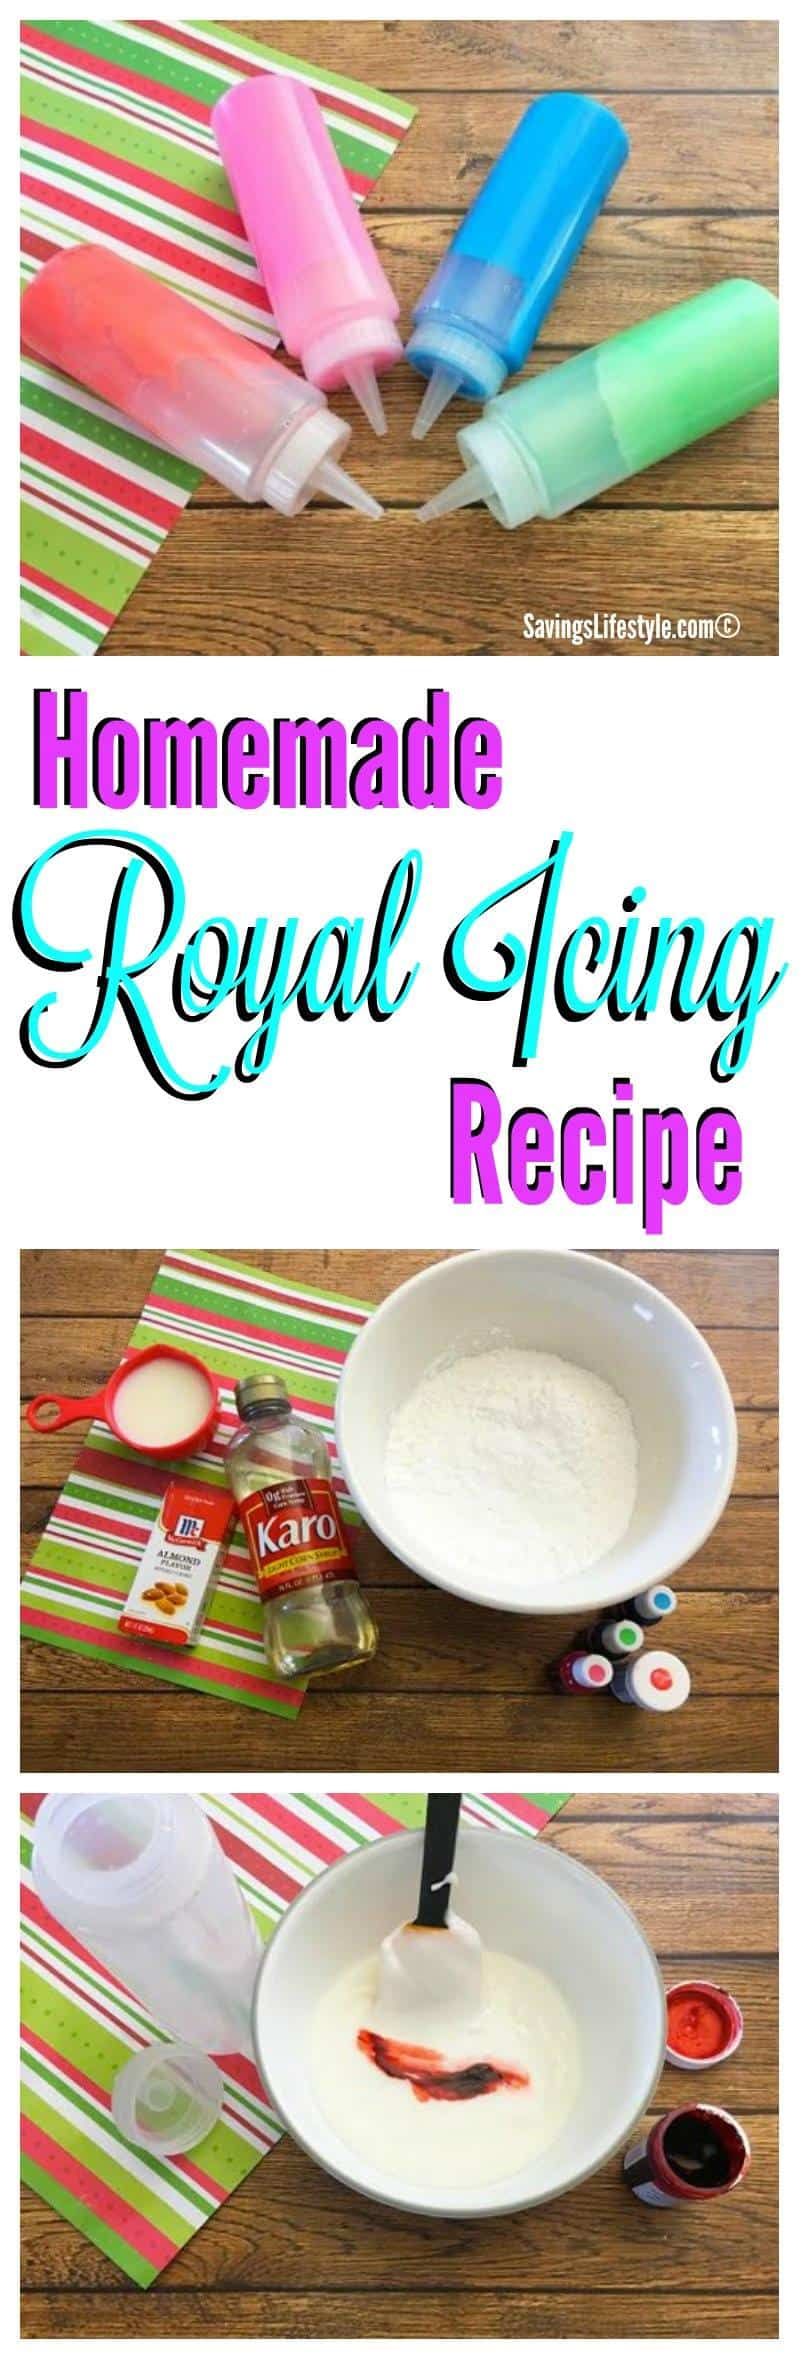 Easy and homemade Royal Icing recipe.